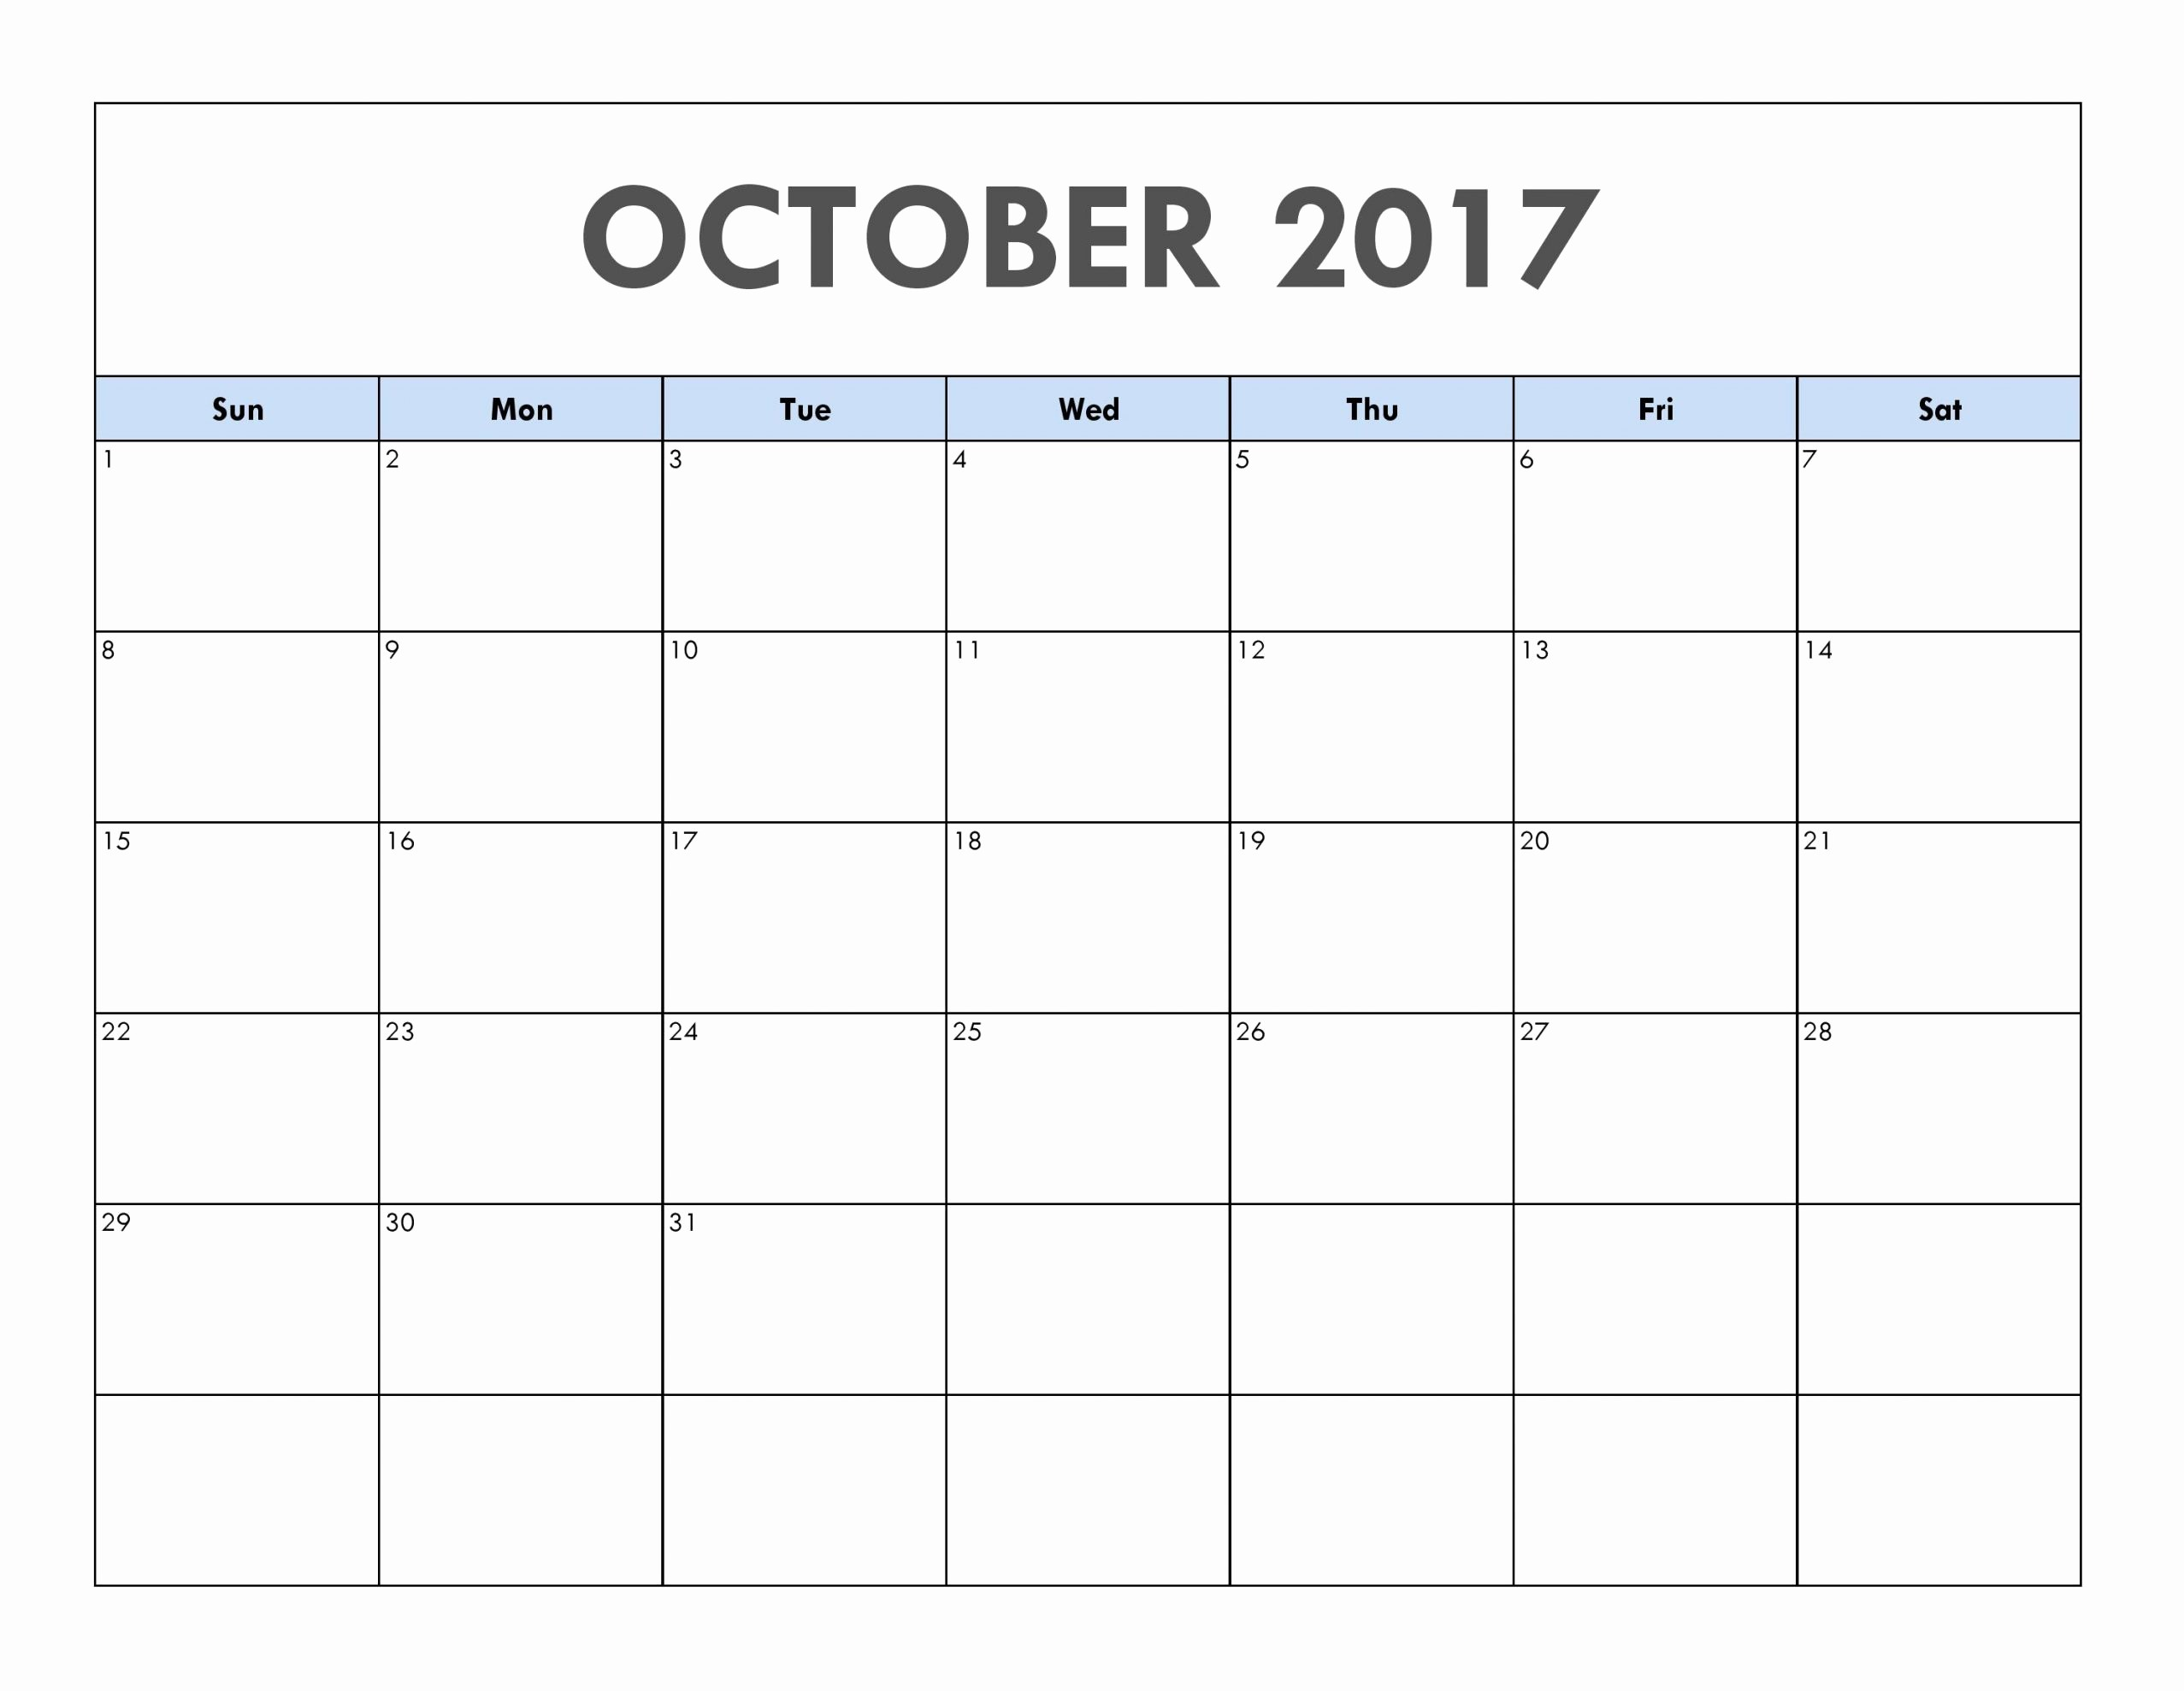 Blank Calendar Template August 2017 New October 2017 Calendar Printable Template